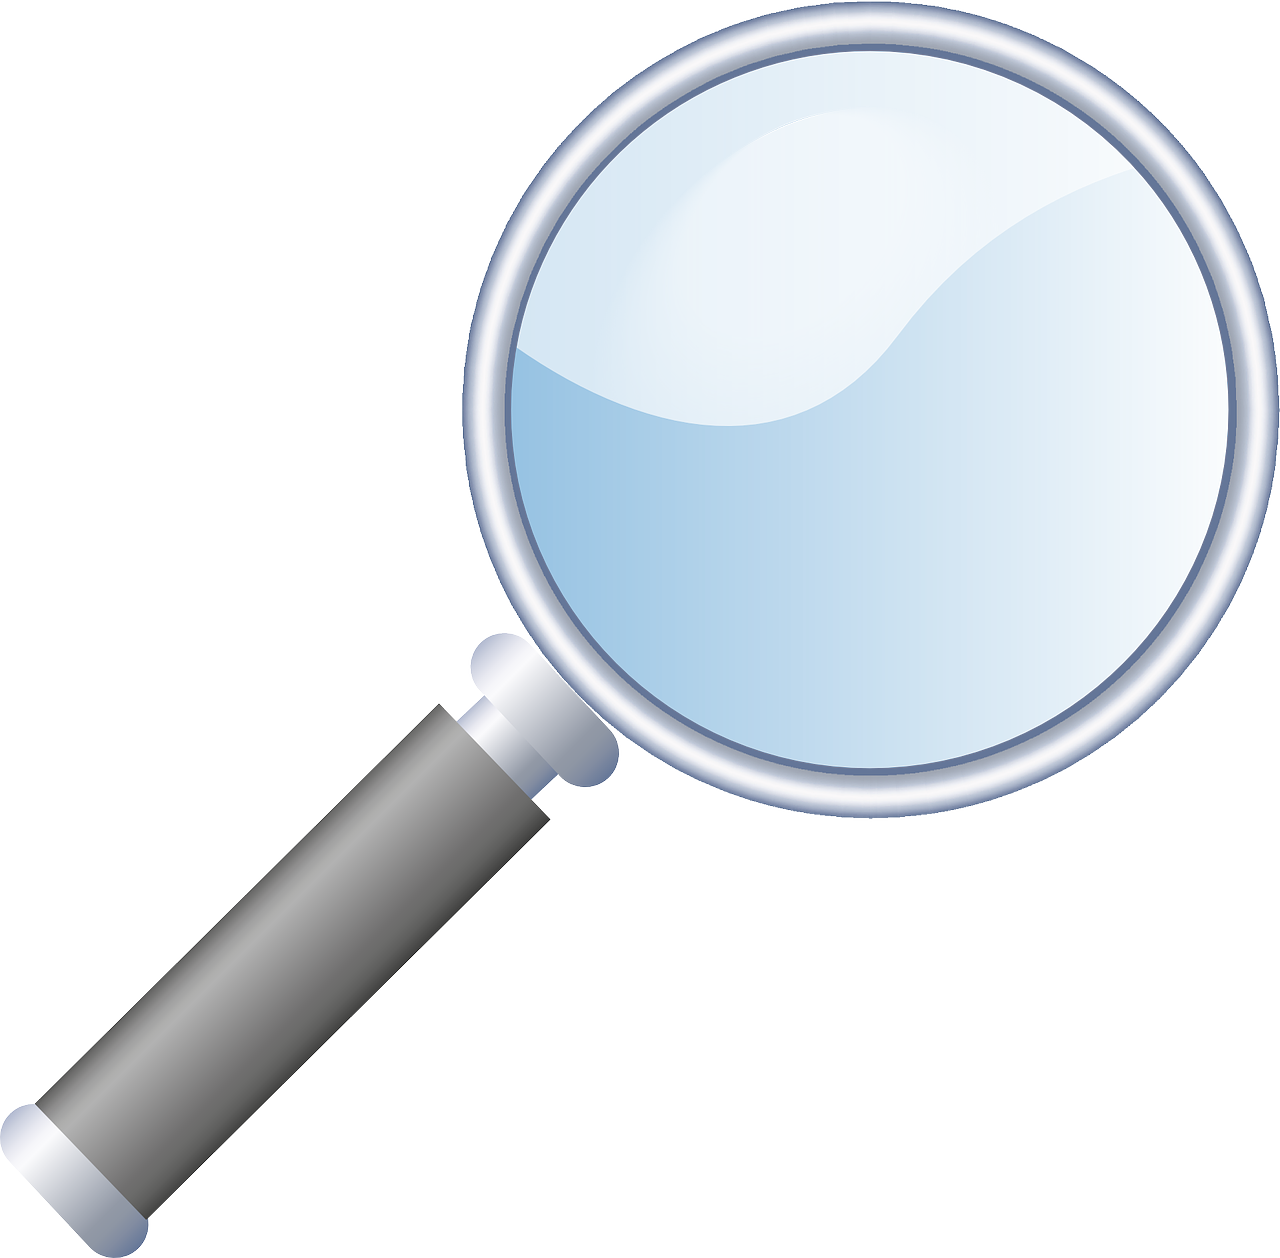 magnifying-glass-189254_1280